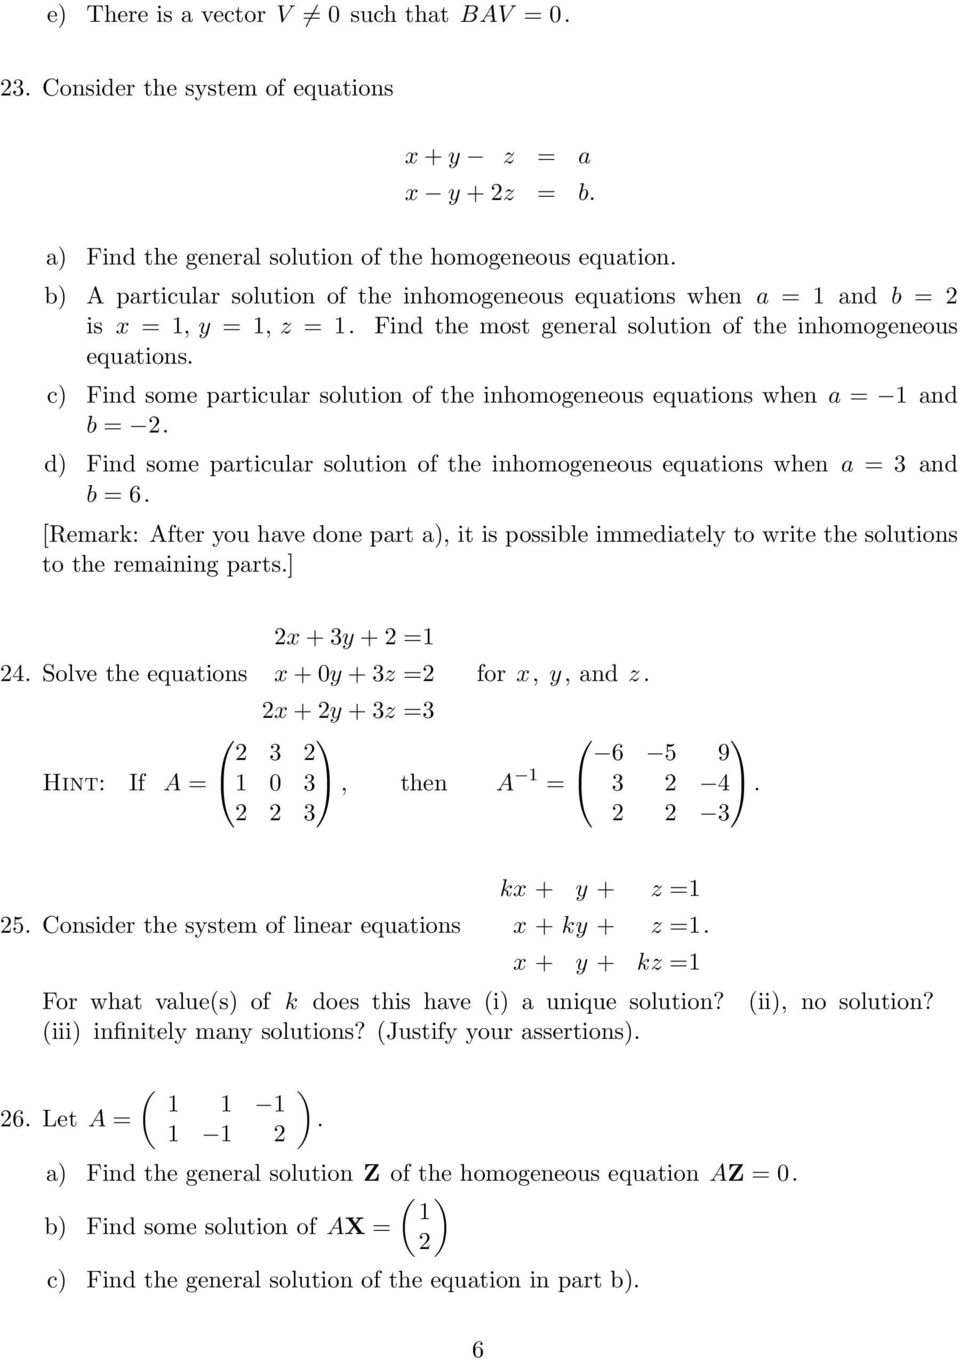 c) Find some particular solution of the inhomogeneous equations when a = 1 and b = 2. d) Find some particular solution of the inhomogeneous equations when a = 3 and b = 6.